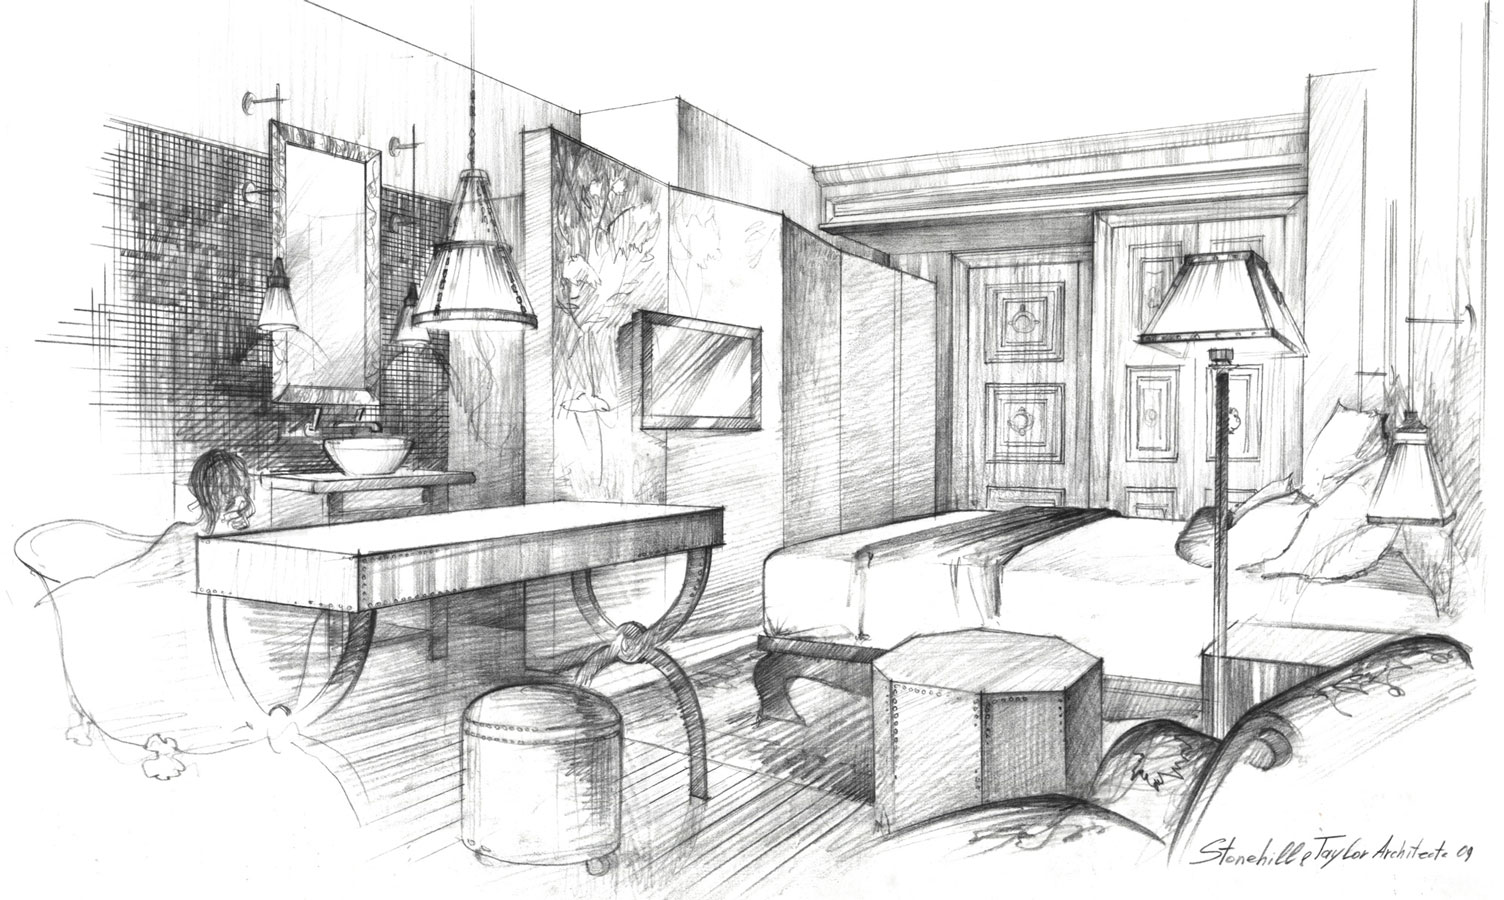 Architectural pencil, hotel room